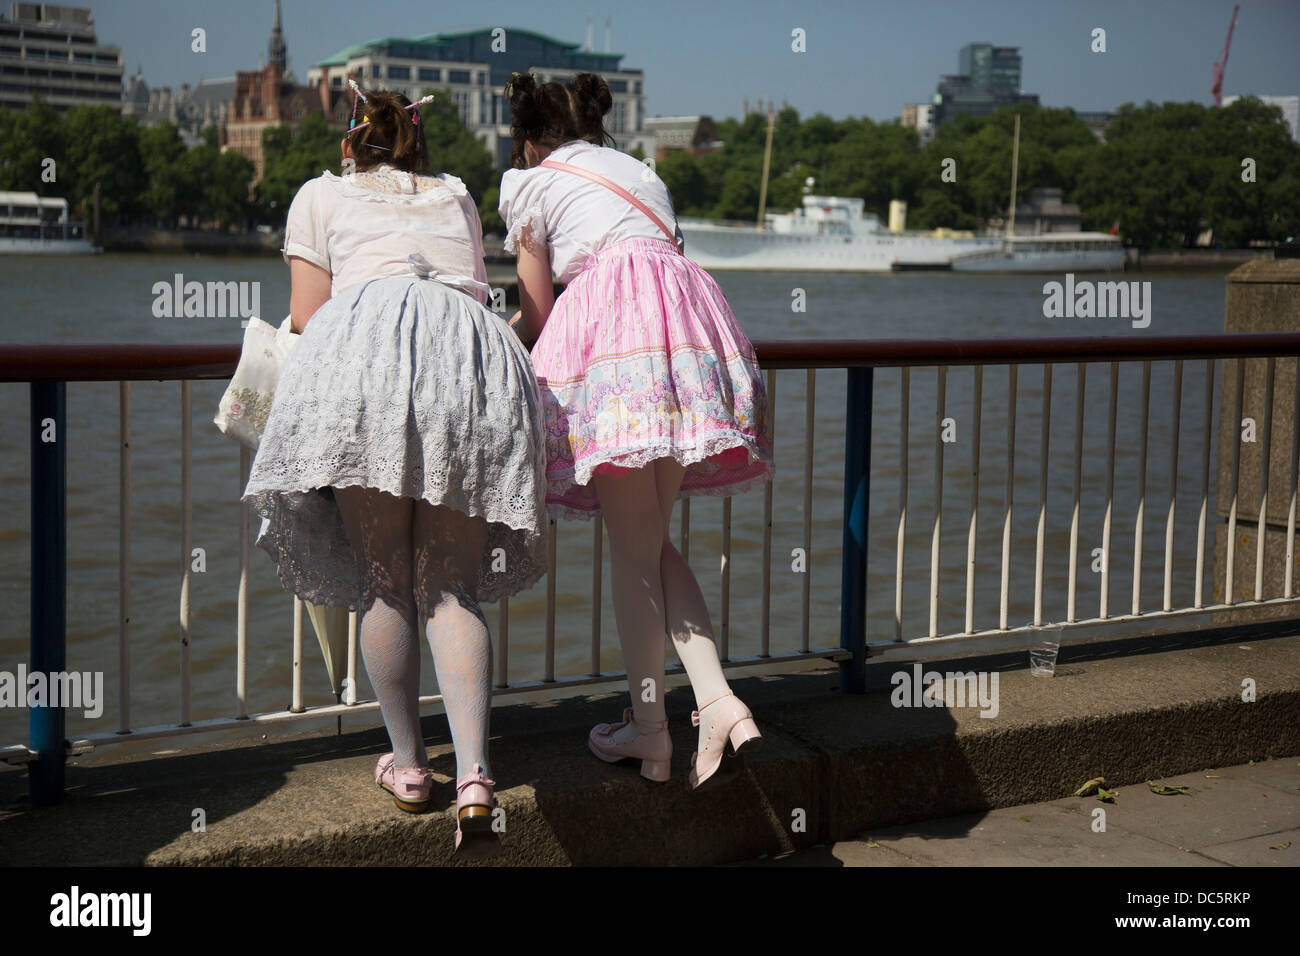 Two girls wearing Lolita dresses lean over the barrier over the River Thames on the South Bank, London, UK. Lolita - Stock Image